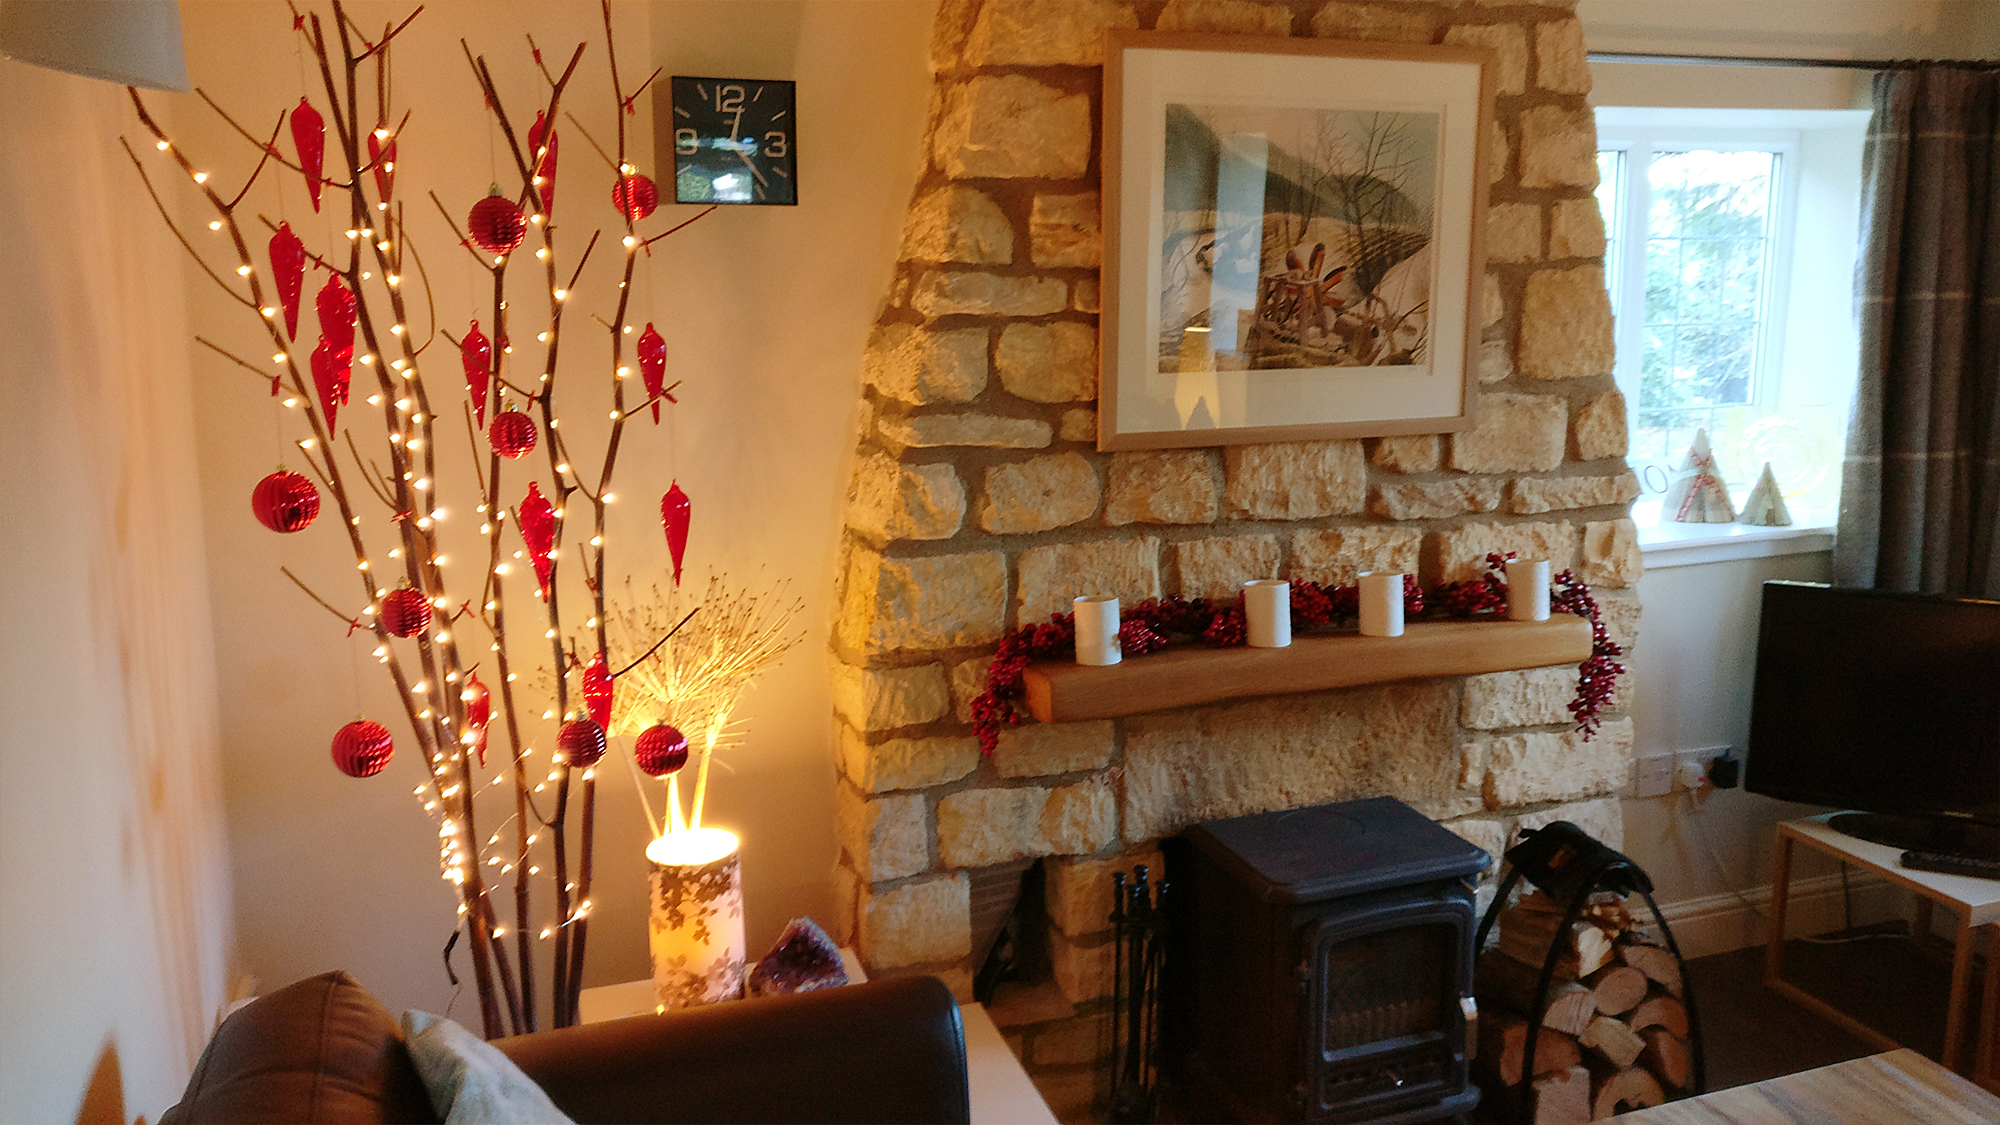 The cottage at Christmas